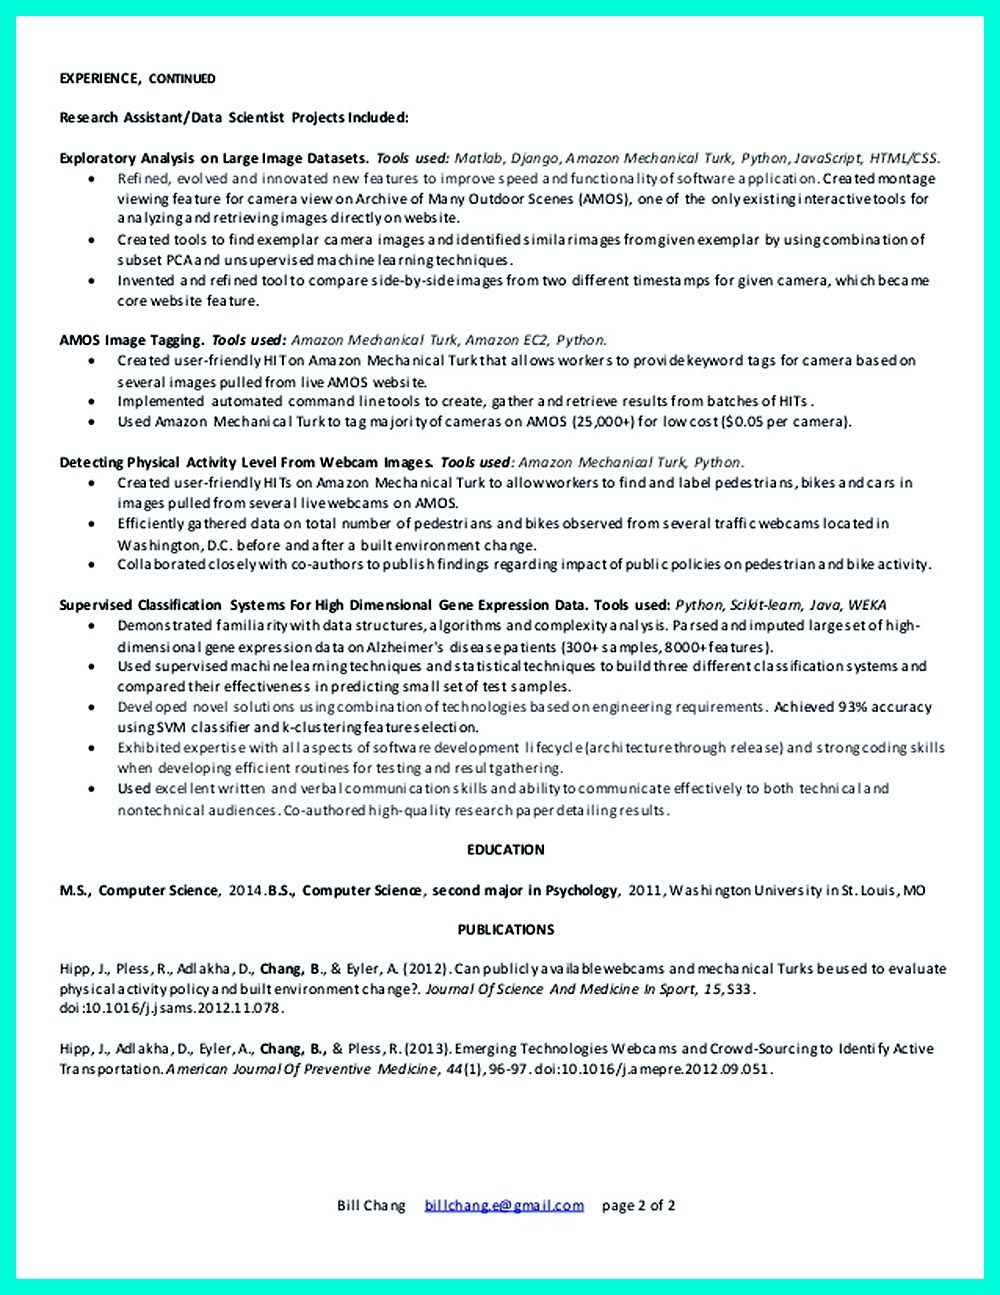 Data scientist resume include everything about your education, skill,  qualification and your previous experience